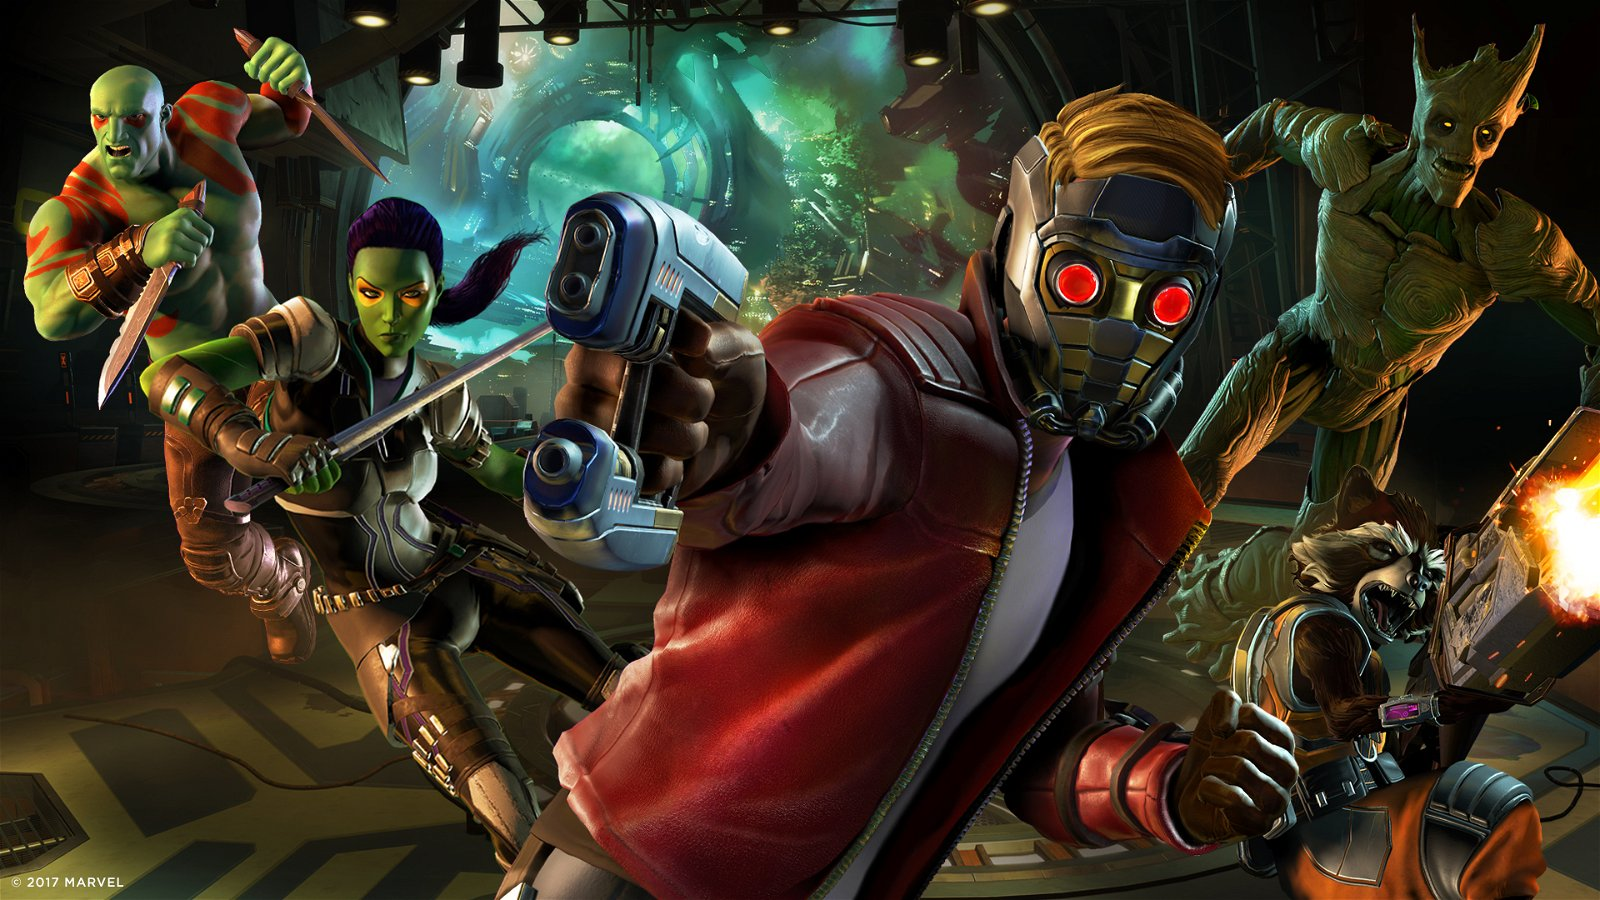 """Guardians of the Galaxy: A Telltale Series Episode 1 """"Tangled Up in Blue"""" Review 6"""